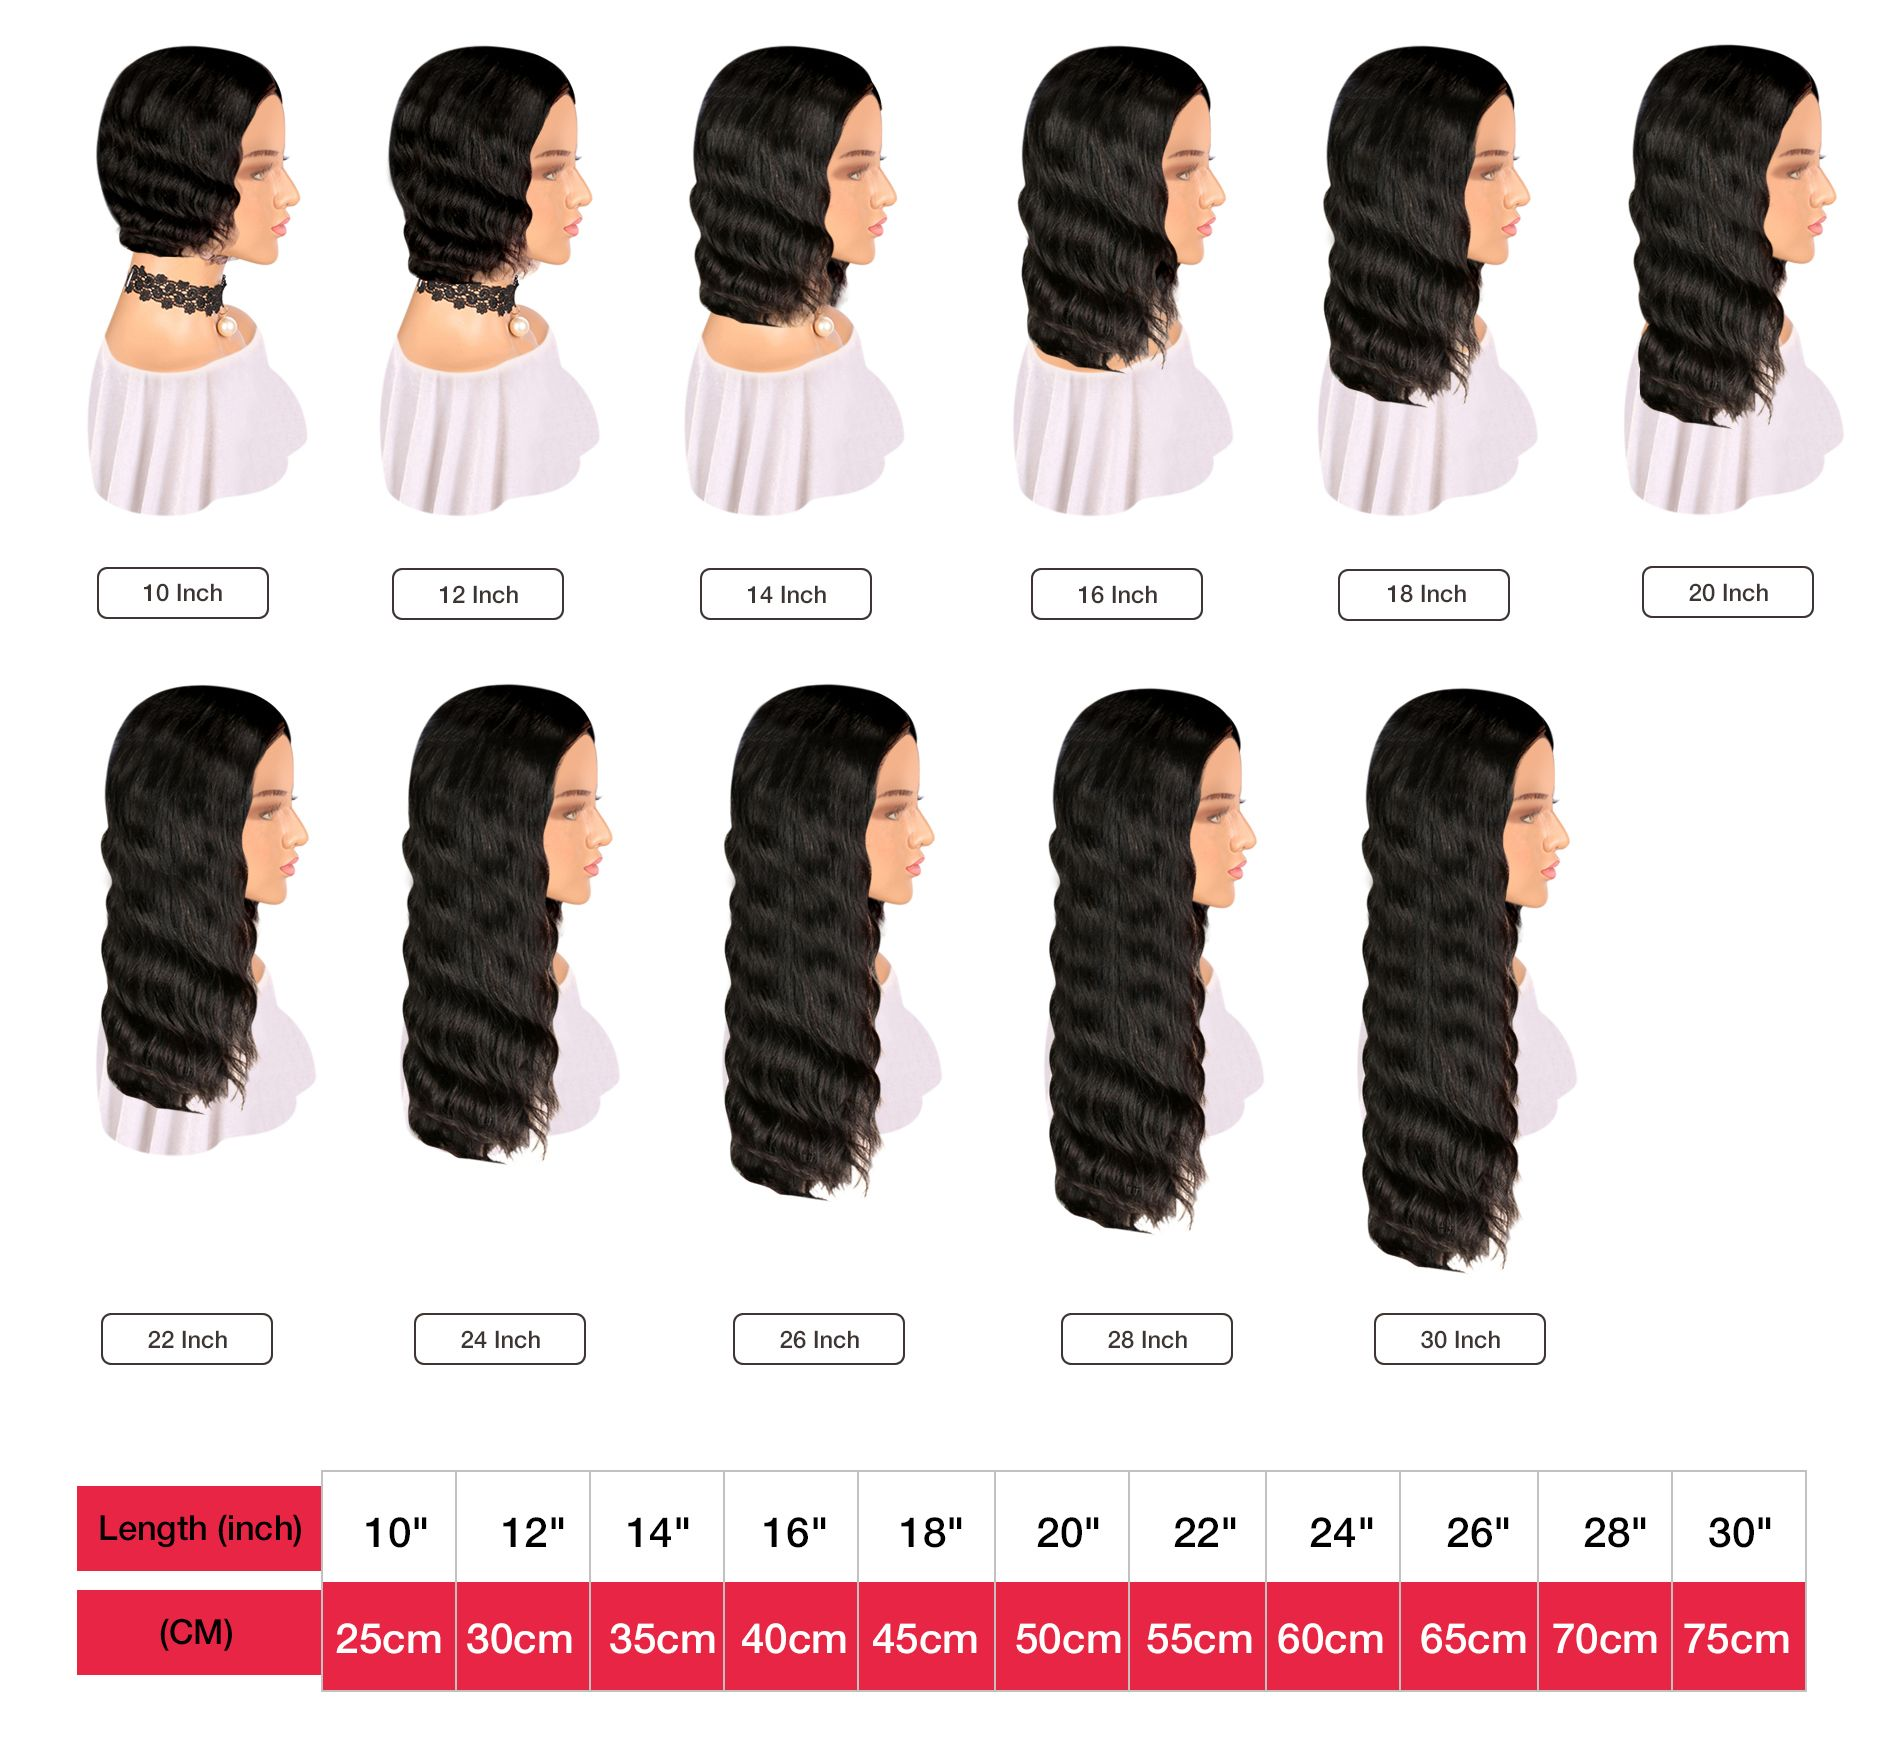 87 99 Human Hair Glueless Lace Front Lace Front Wig Bob Kardashian Style Indian Hair Straight Wig 130 Density With Baby Hair Natural Hairline For Black Wome Human Hair Lace Wigs Human